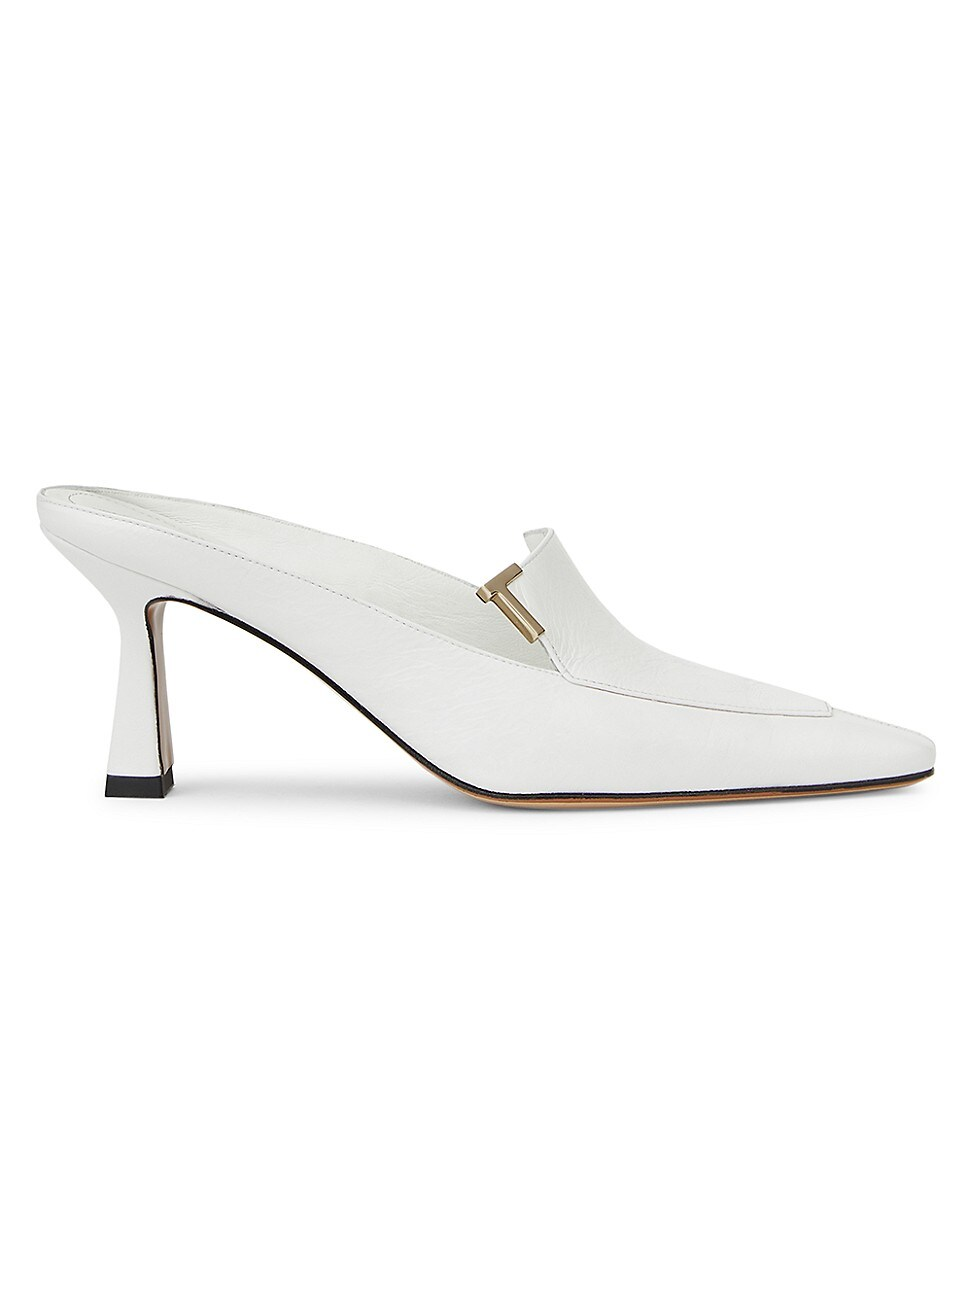 Lafayette 148 WOMEN'S CIARA LEATHER LOAFER MULES